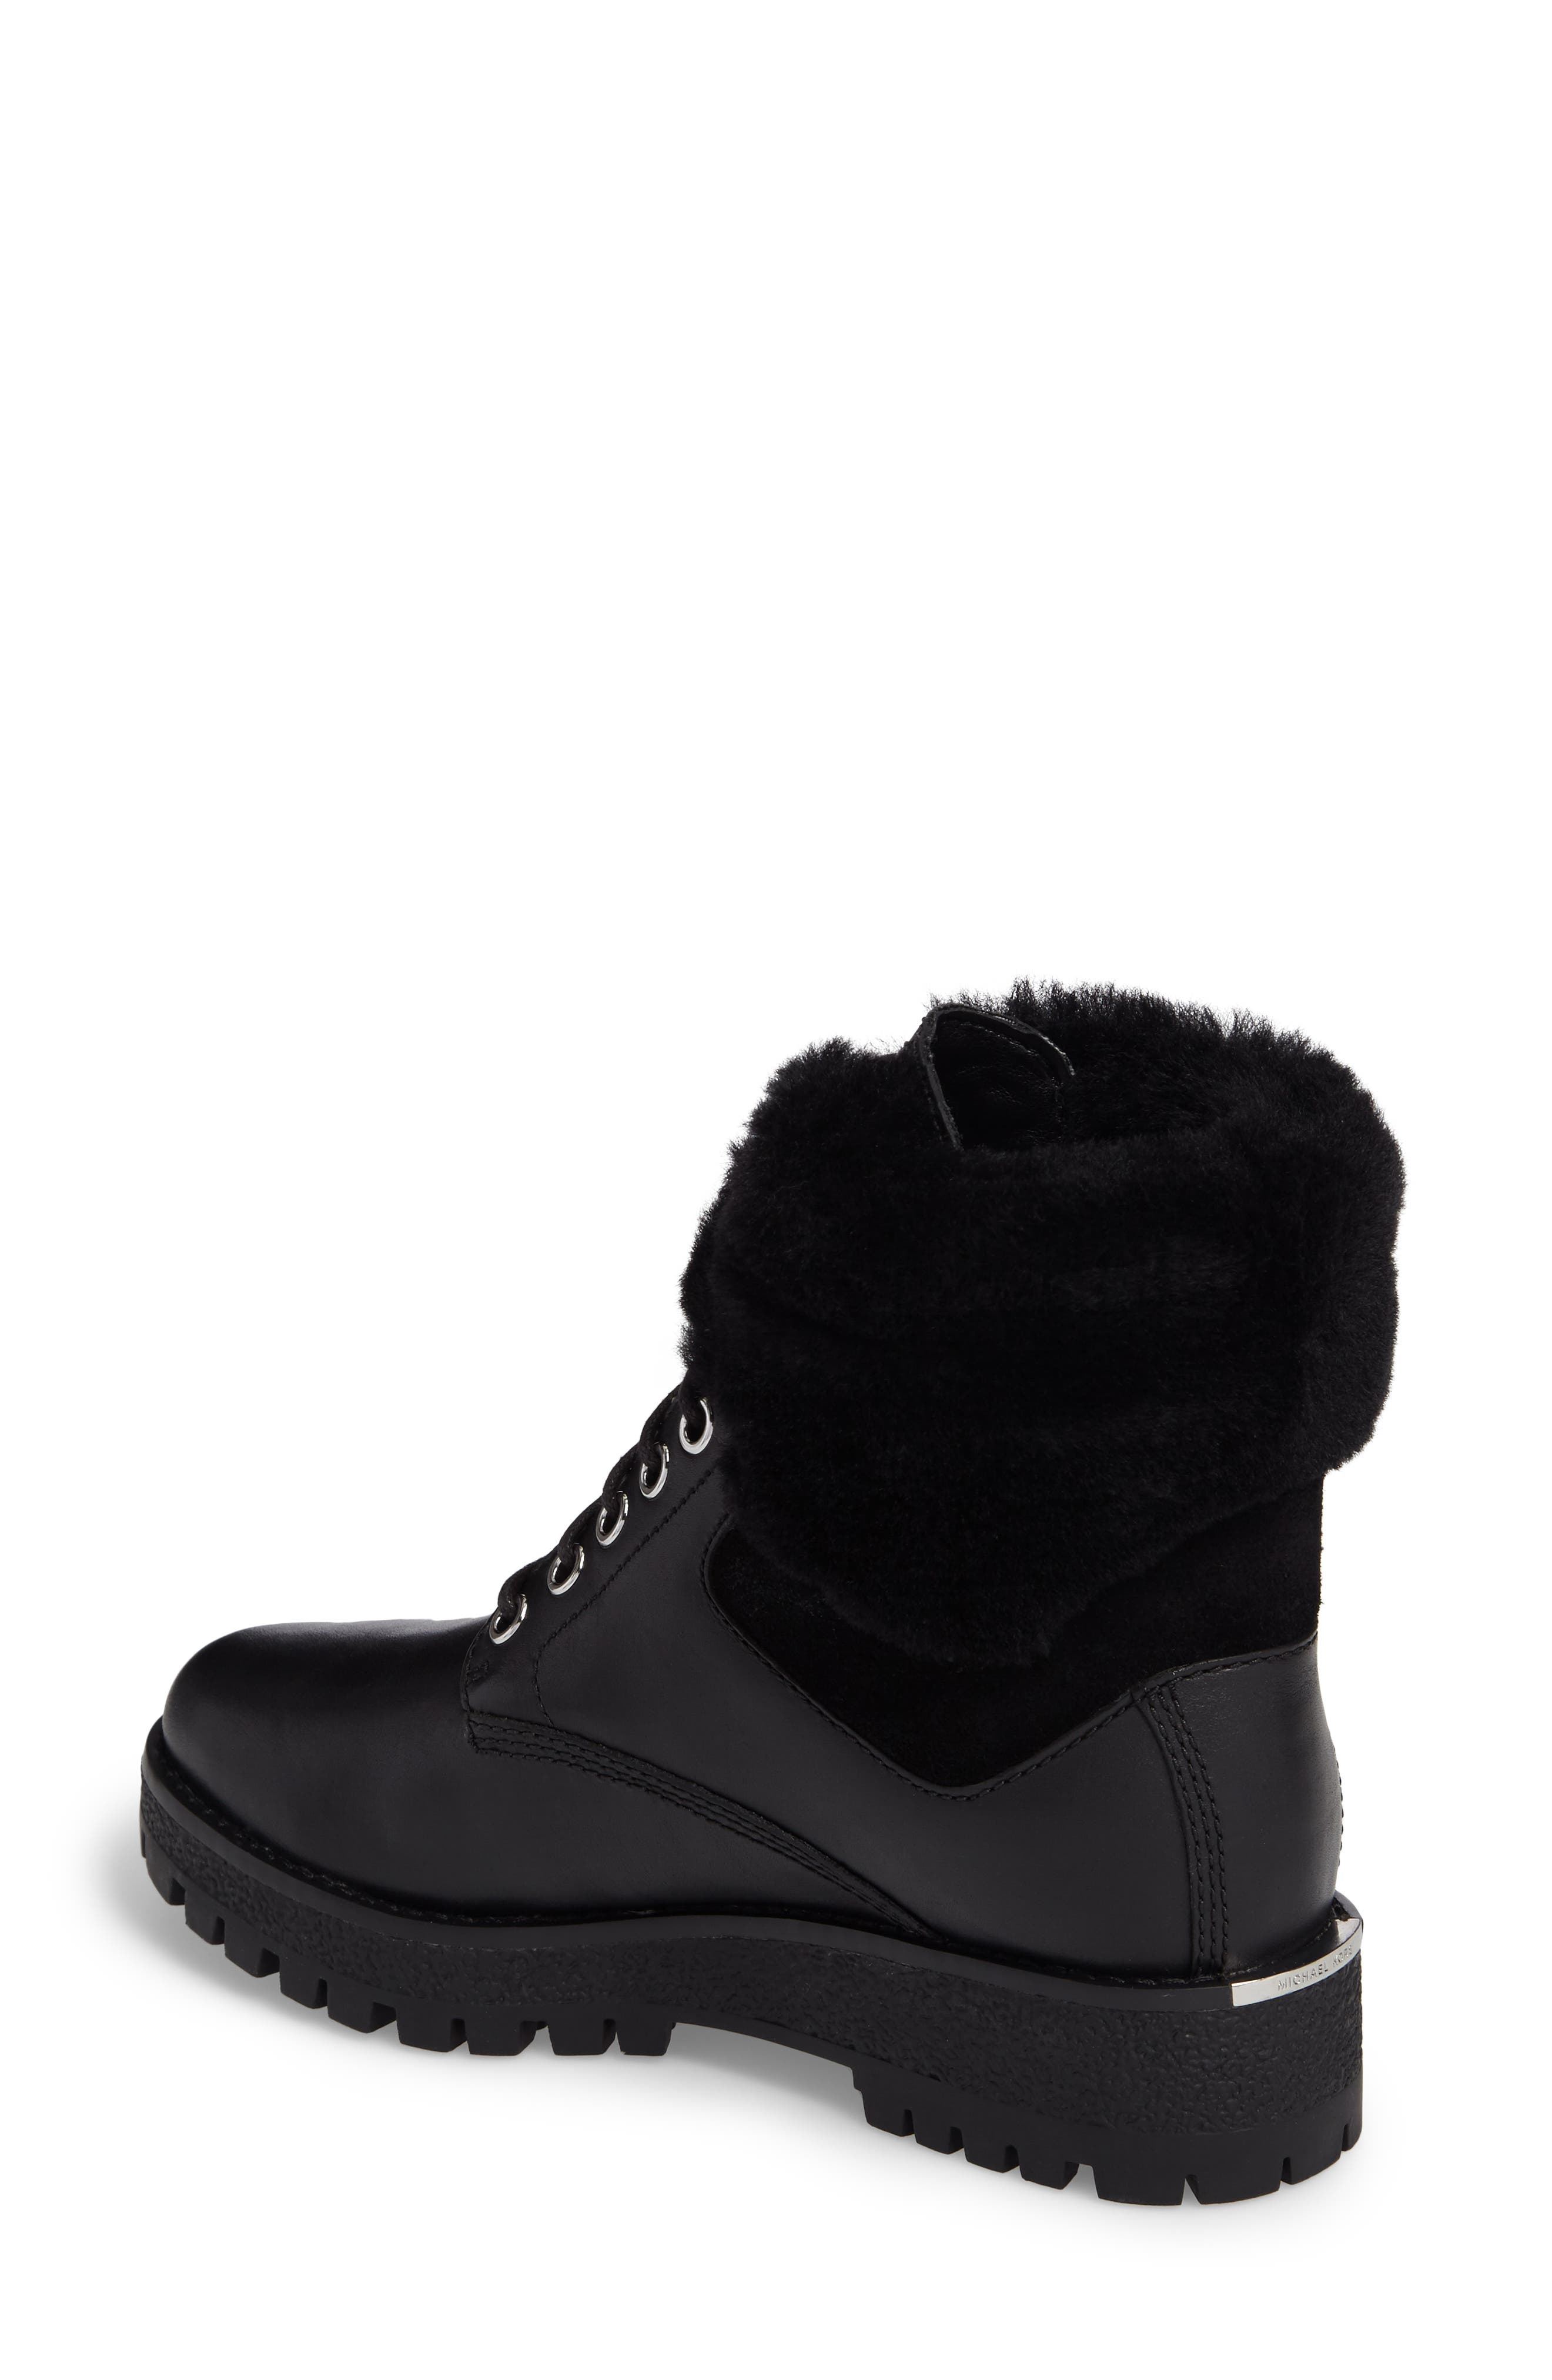 Alternate Image 2  - MICHAEL Michael Kors Teddy Water Resistant Boot with Genuine Shearling Trim (Women)